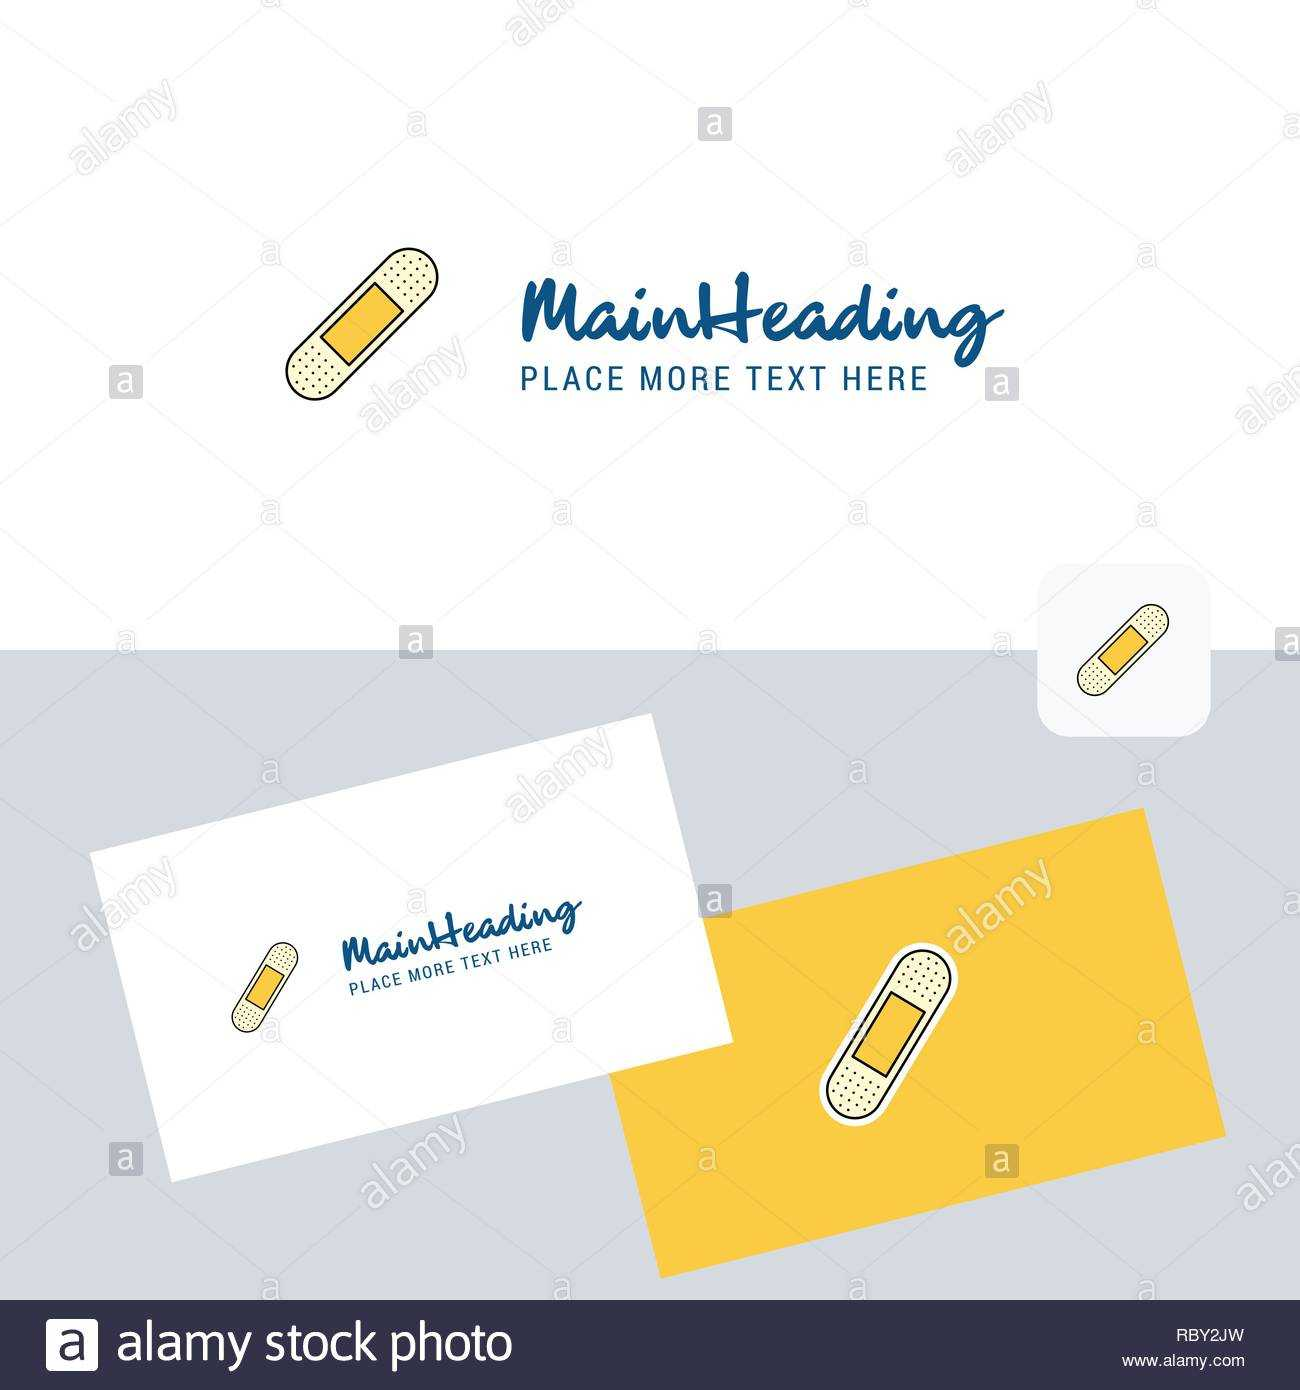 Plaster Vector Logotype With Business Card Template. Elegant Pertaining To Plastering Business Cards Templates